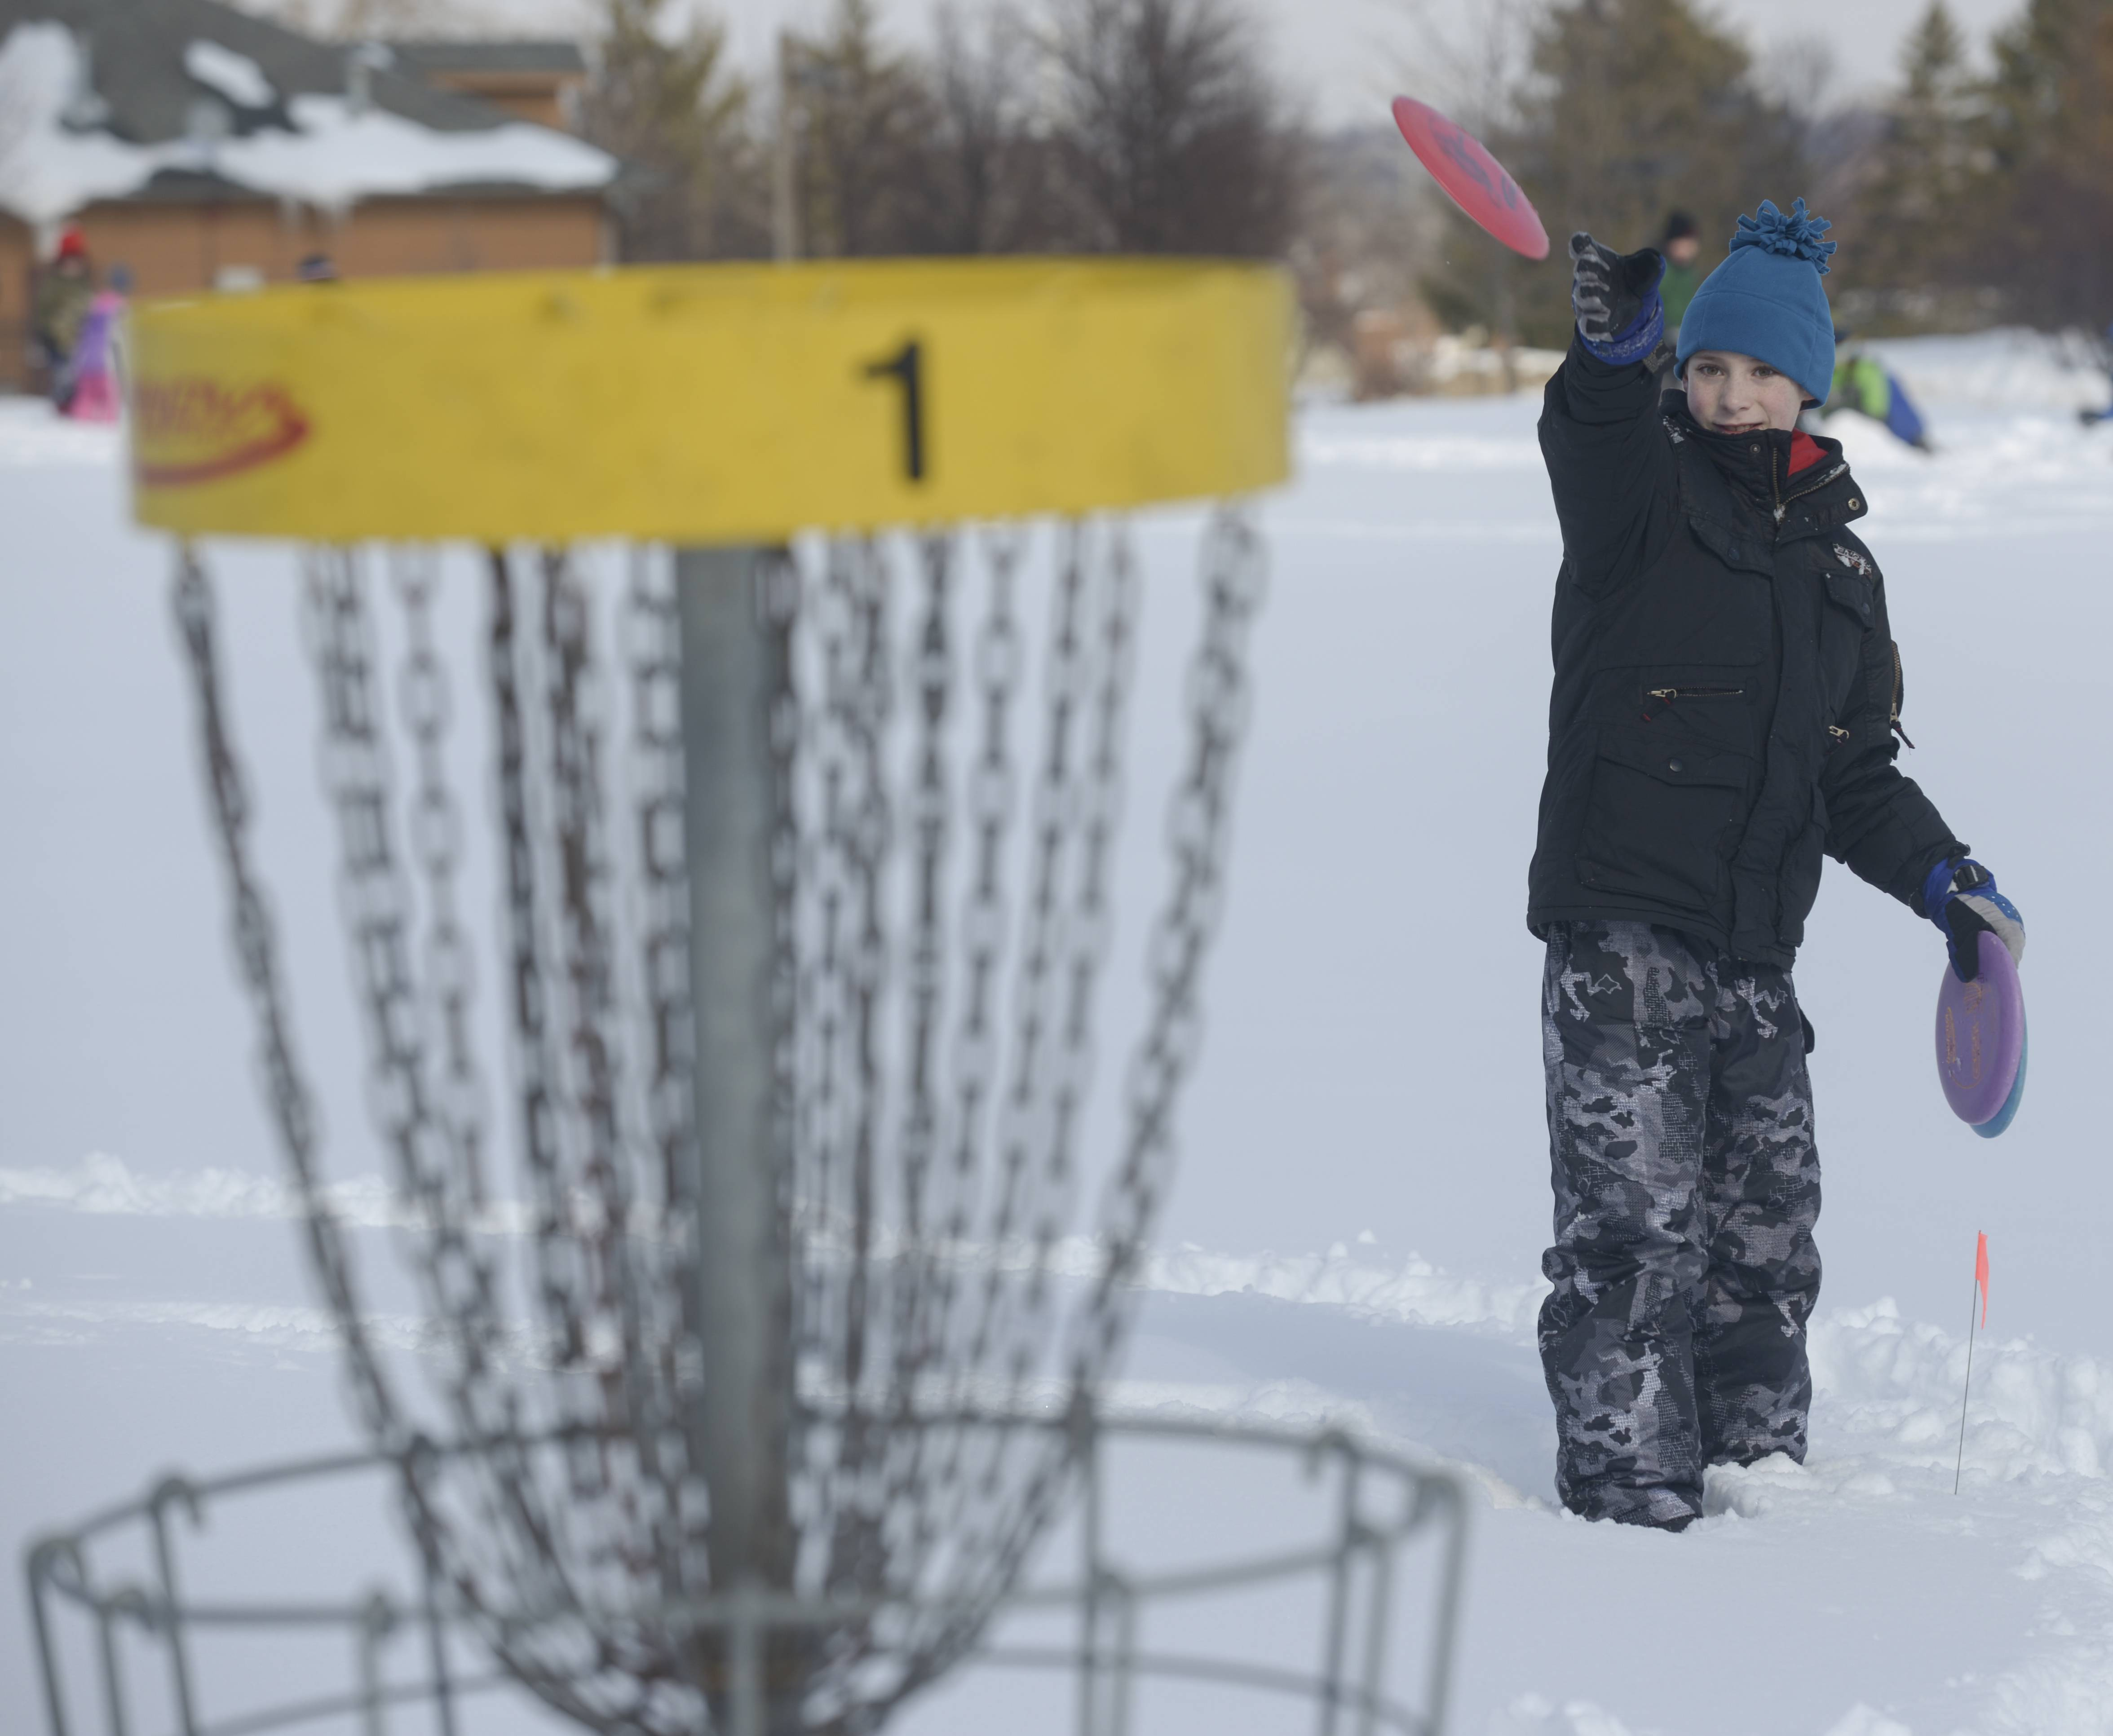 Joey Valli, 10, of Glen Ellyn tries snowy Disc Golf during the Glen Ellyn Park District's 2nd annual Arctic Blast event at Maryknoll Park on Sunday. The event also featured a snowball toss, snowman building and Chilly Paddle Tennis.